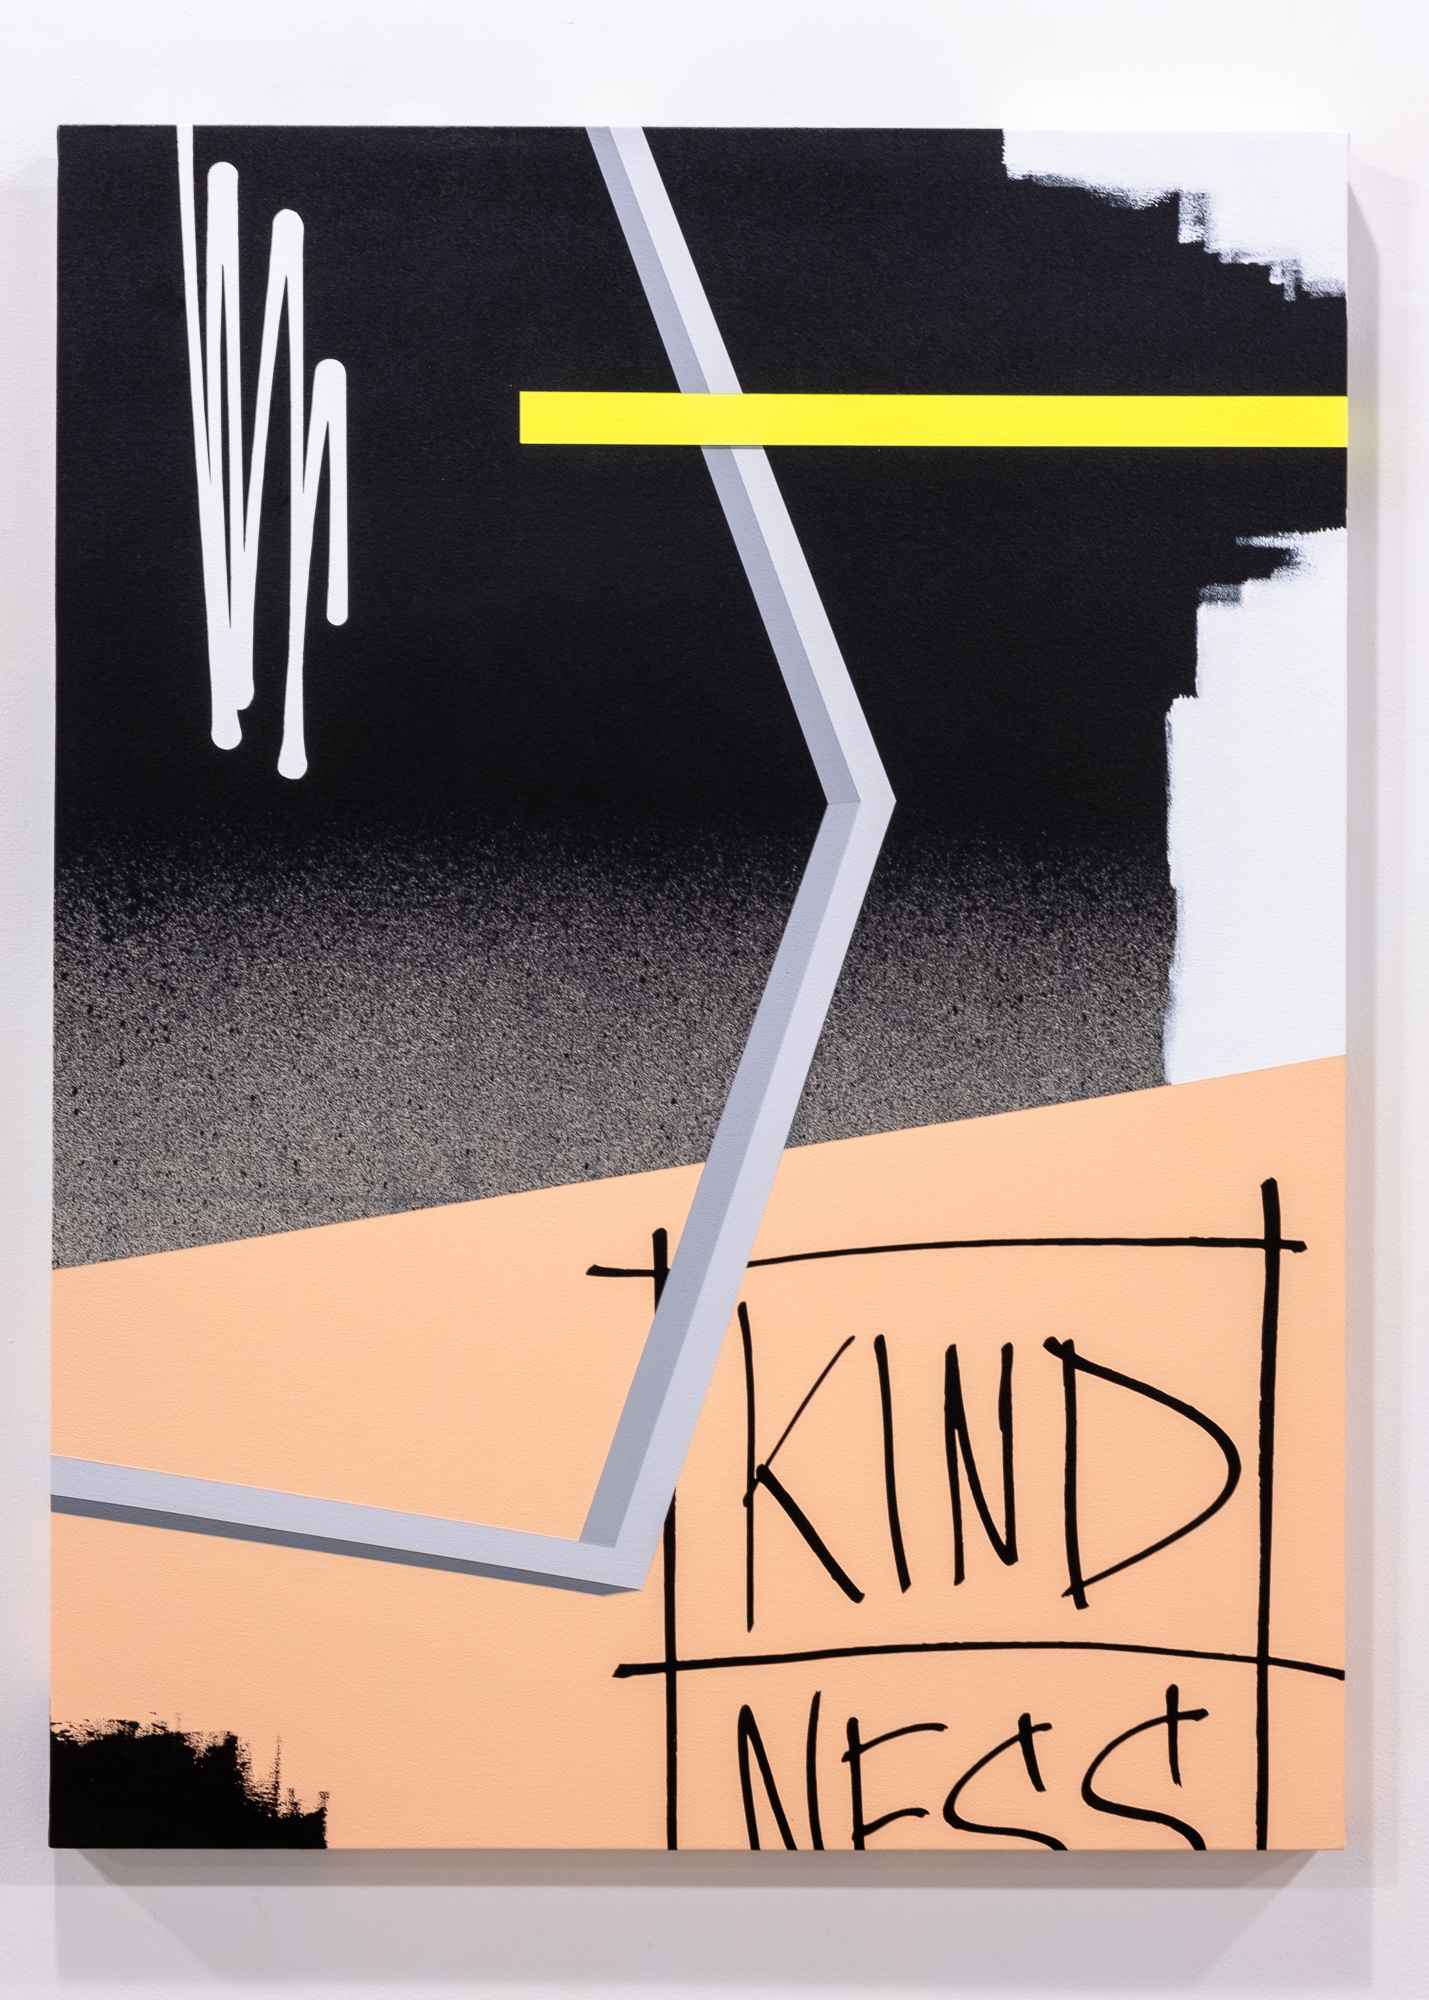 Jeremy Brown & Adam Podber  Kindness  acrylic, aerosol, and ink on canvas  36 x 48 inches JBR 154G